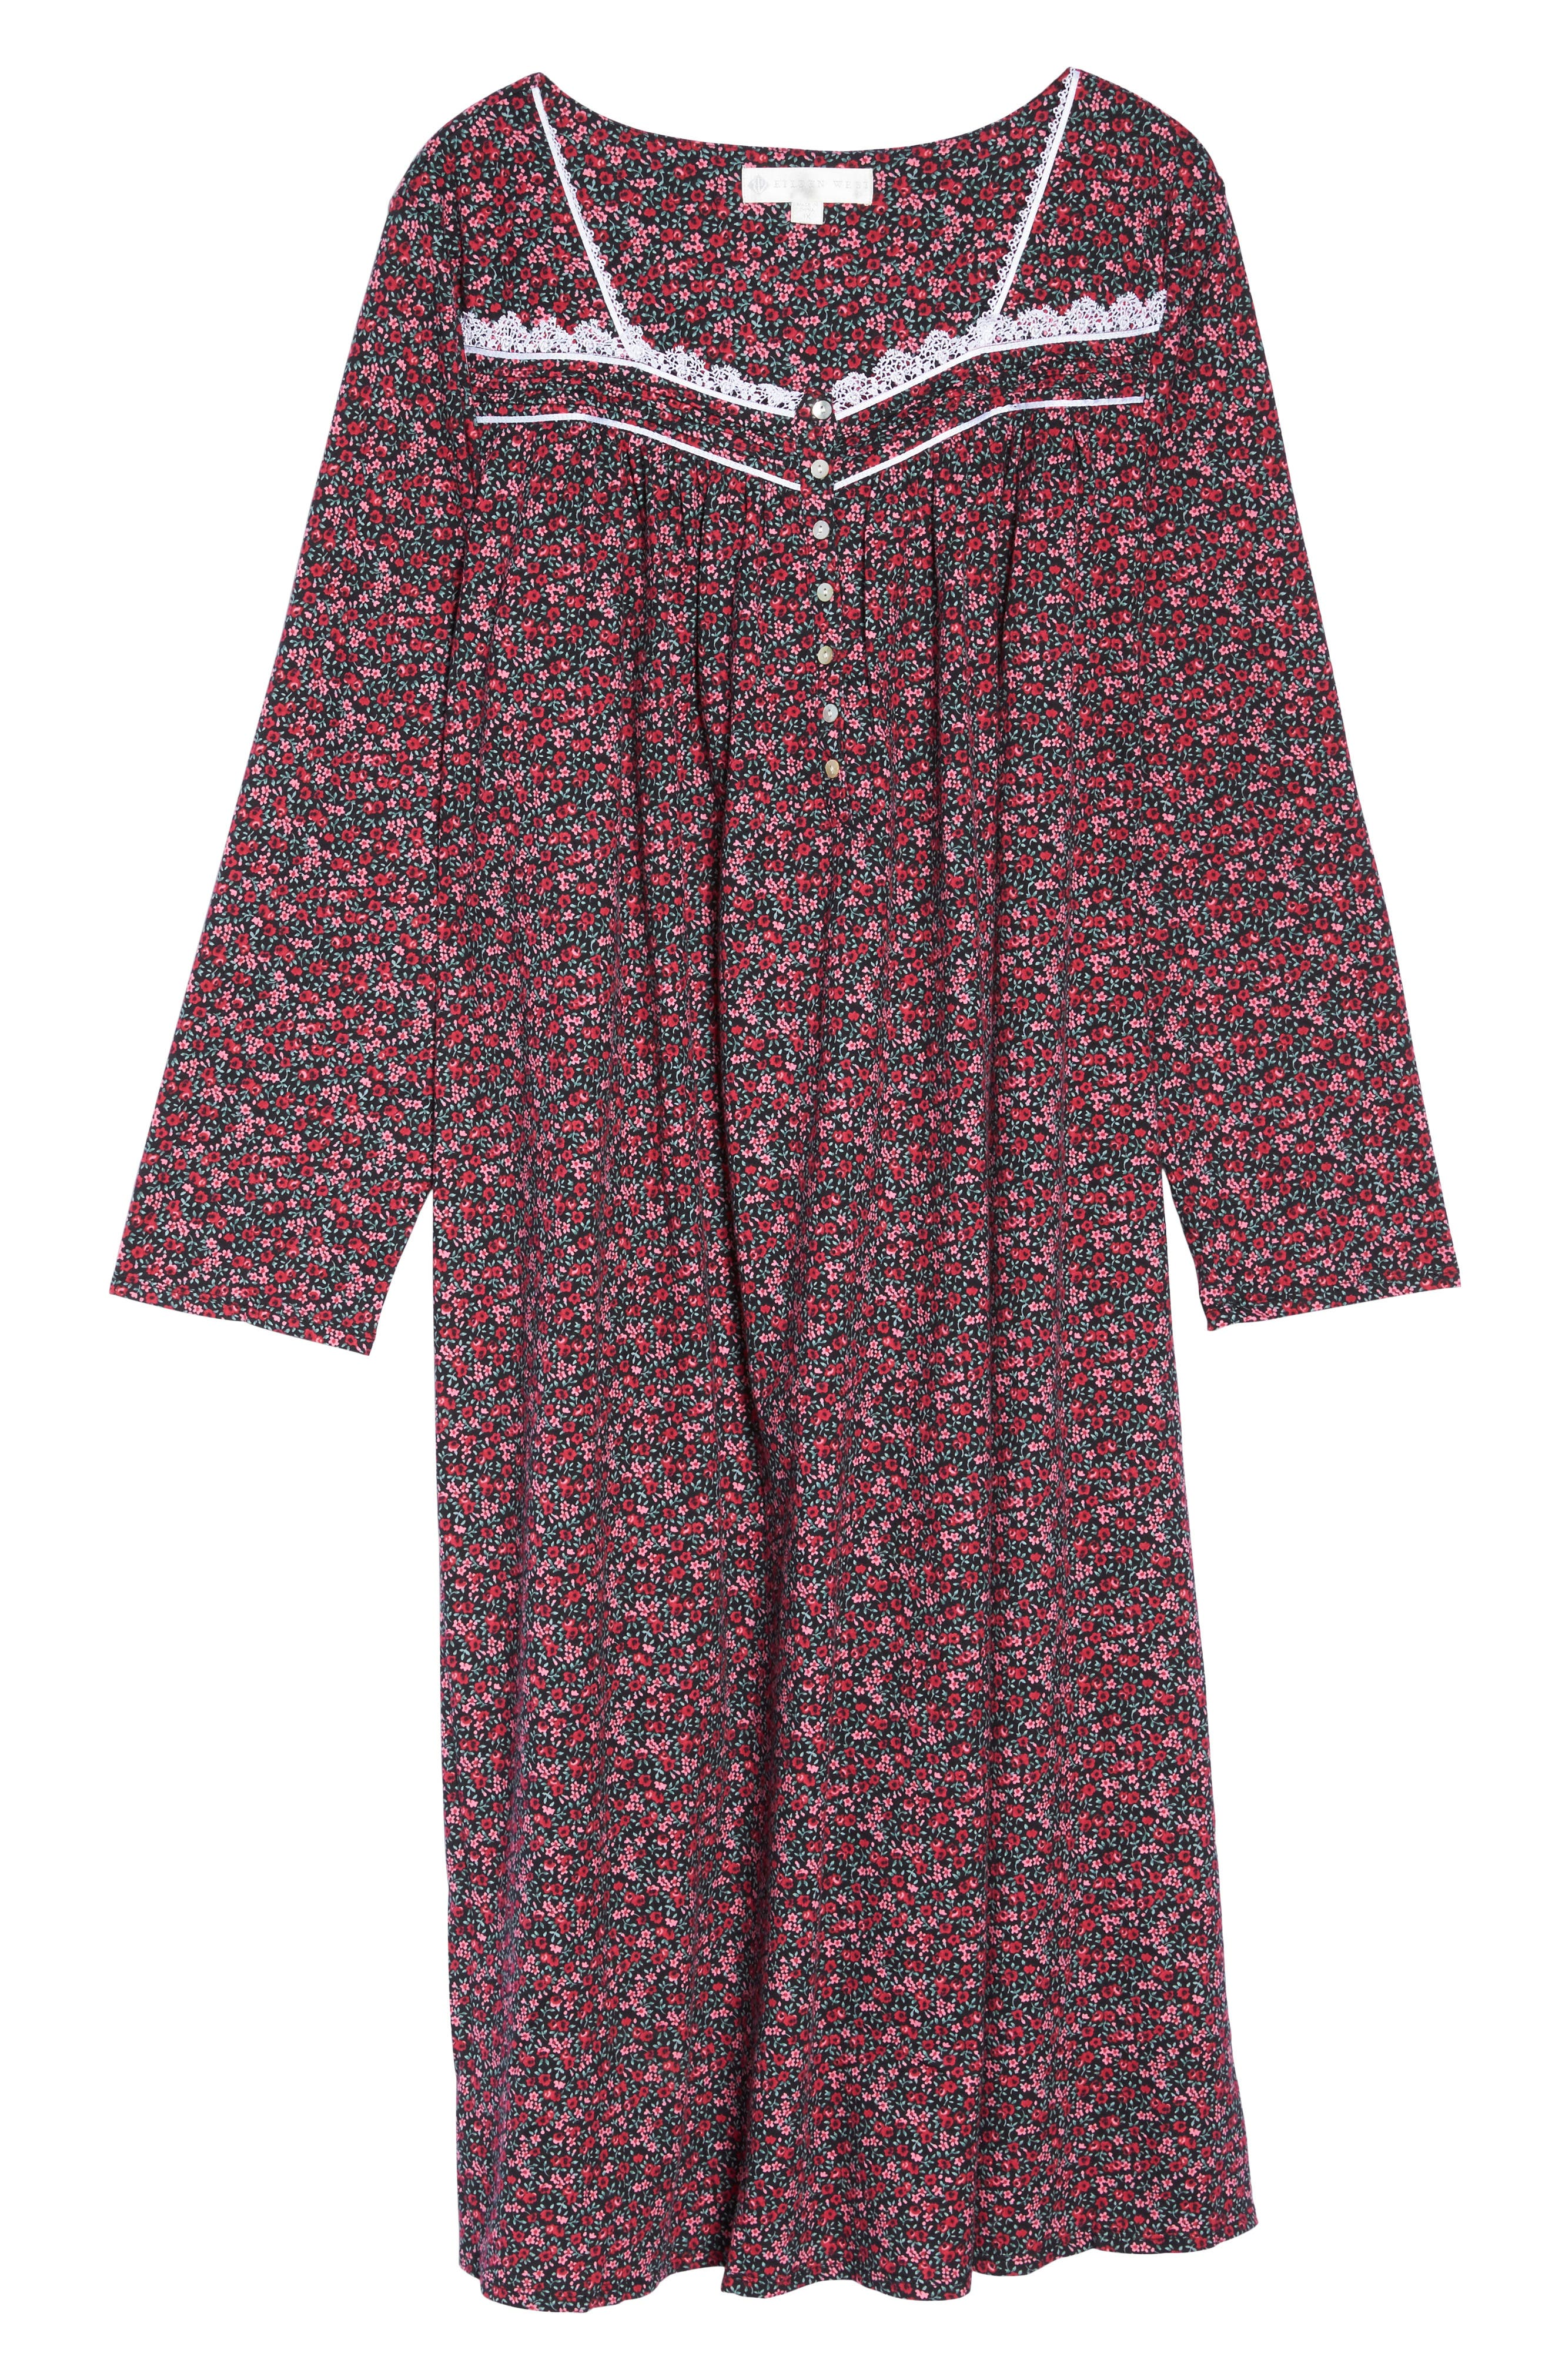 Alternate Image 4  - Eileen West Cotton Nightgown (Plus Size)